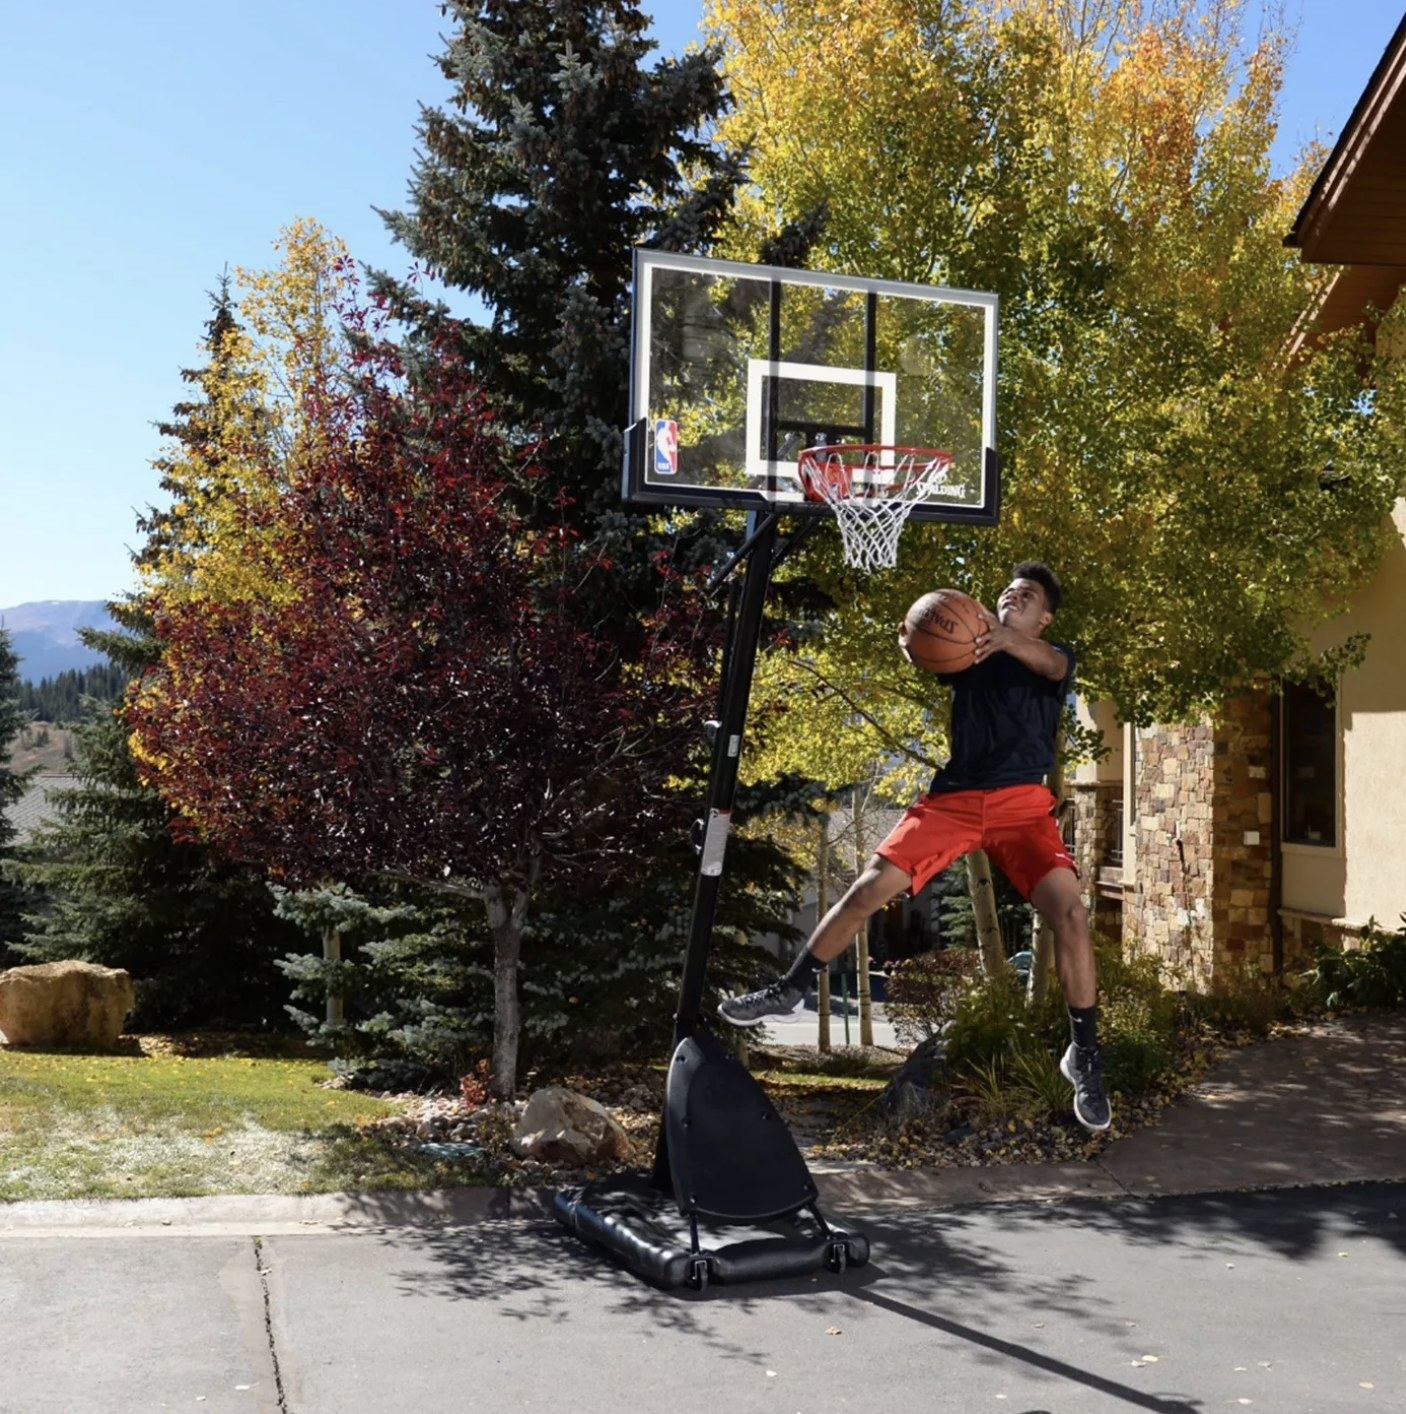 A person dunking a basketball in a hoop